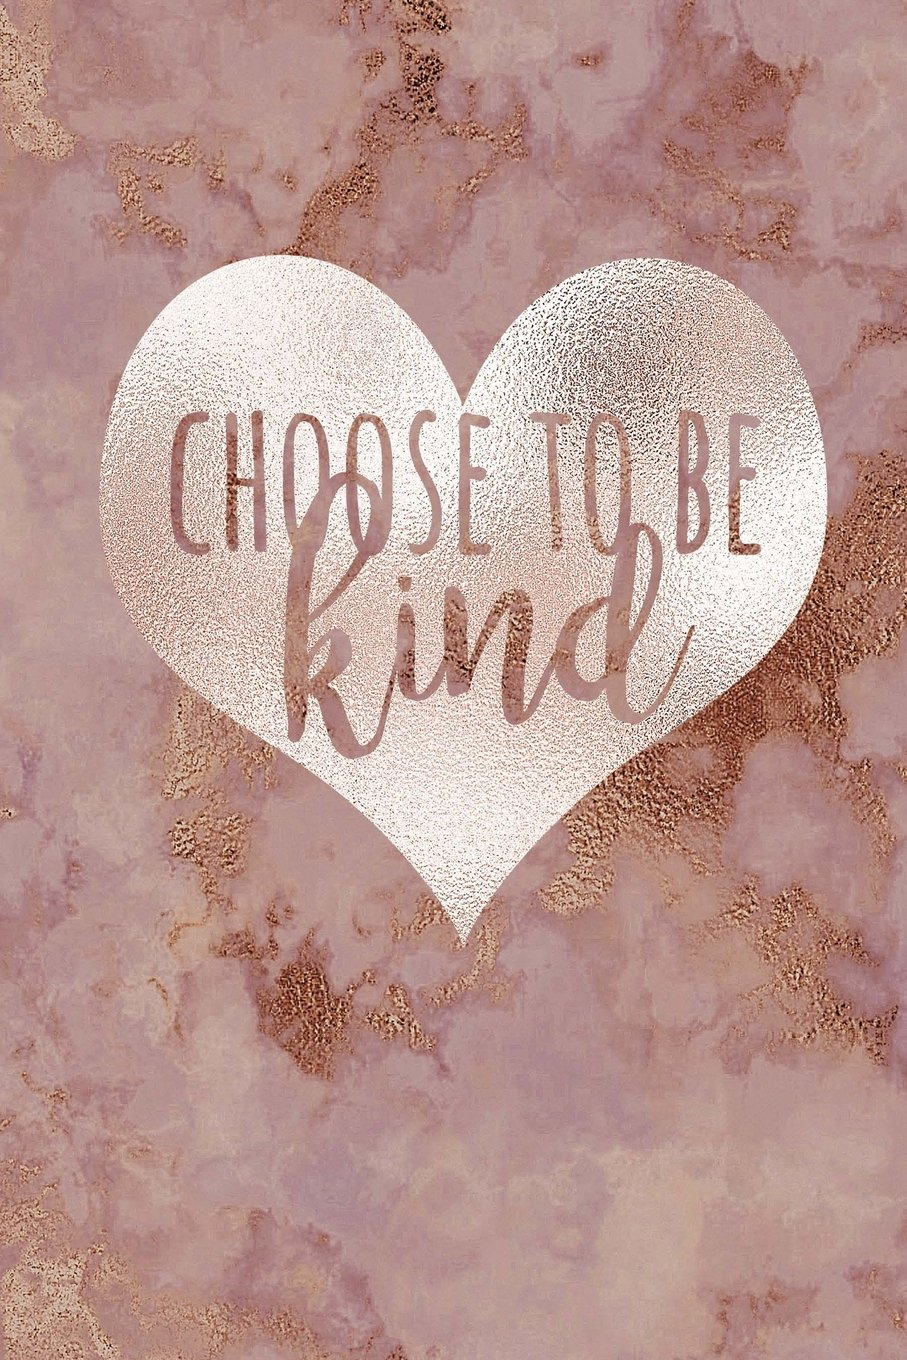 Download Choose To Be Kind: Small Inspirational Notebook, Be Kind Journal, Choose Kind Journal, It's Cool To Be Kind, Rose Gold Notebook, Rose Gold Journal, ... Marble Notebook Small, 6x9 college ruled pdf epub